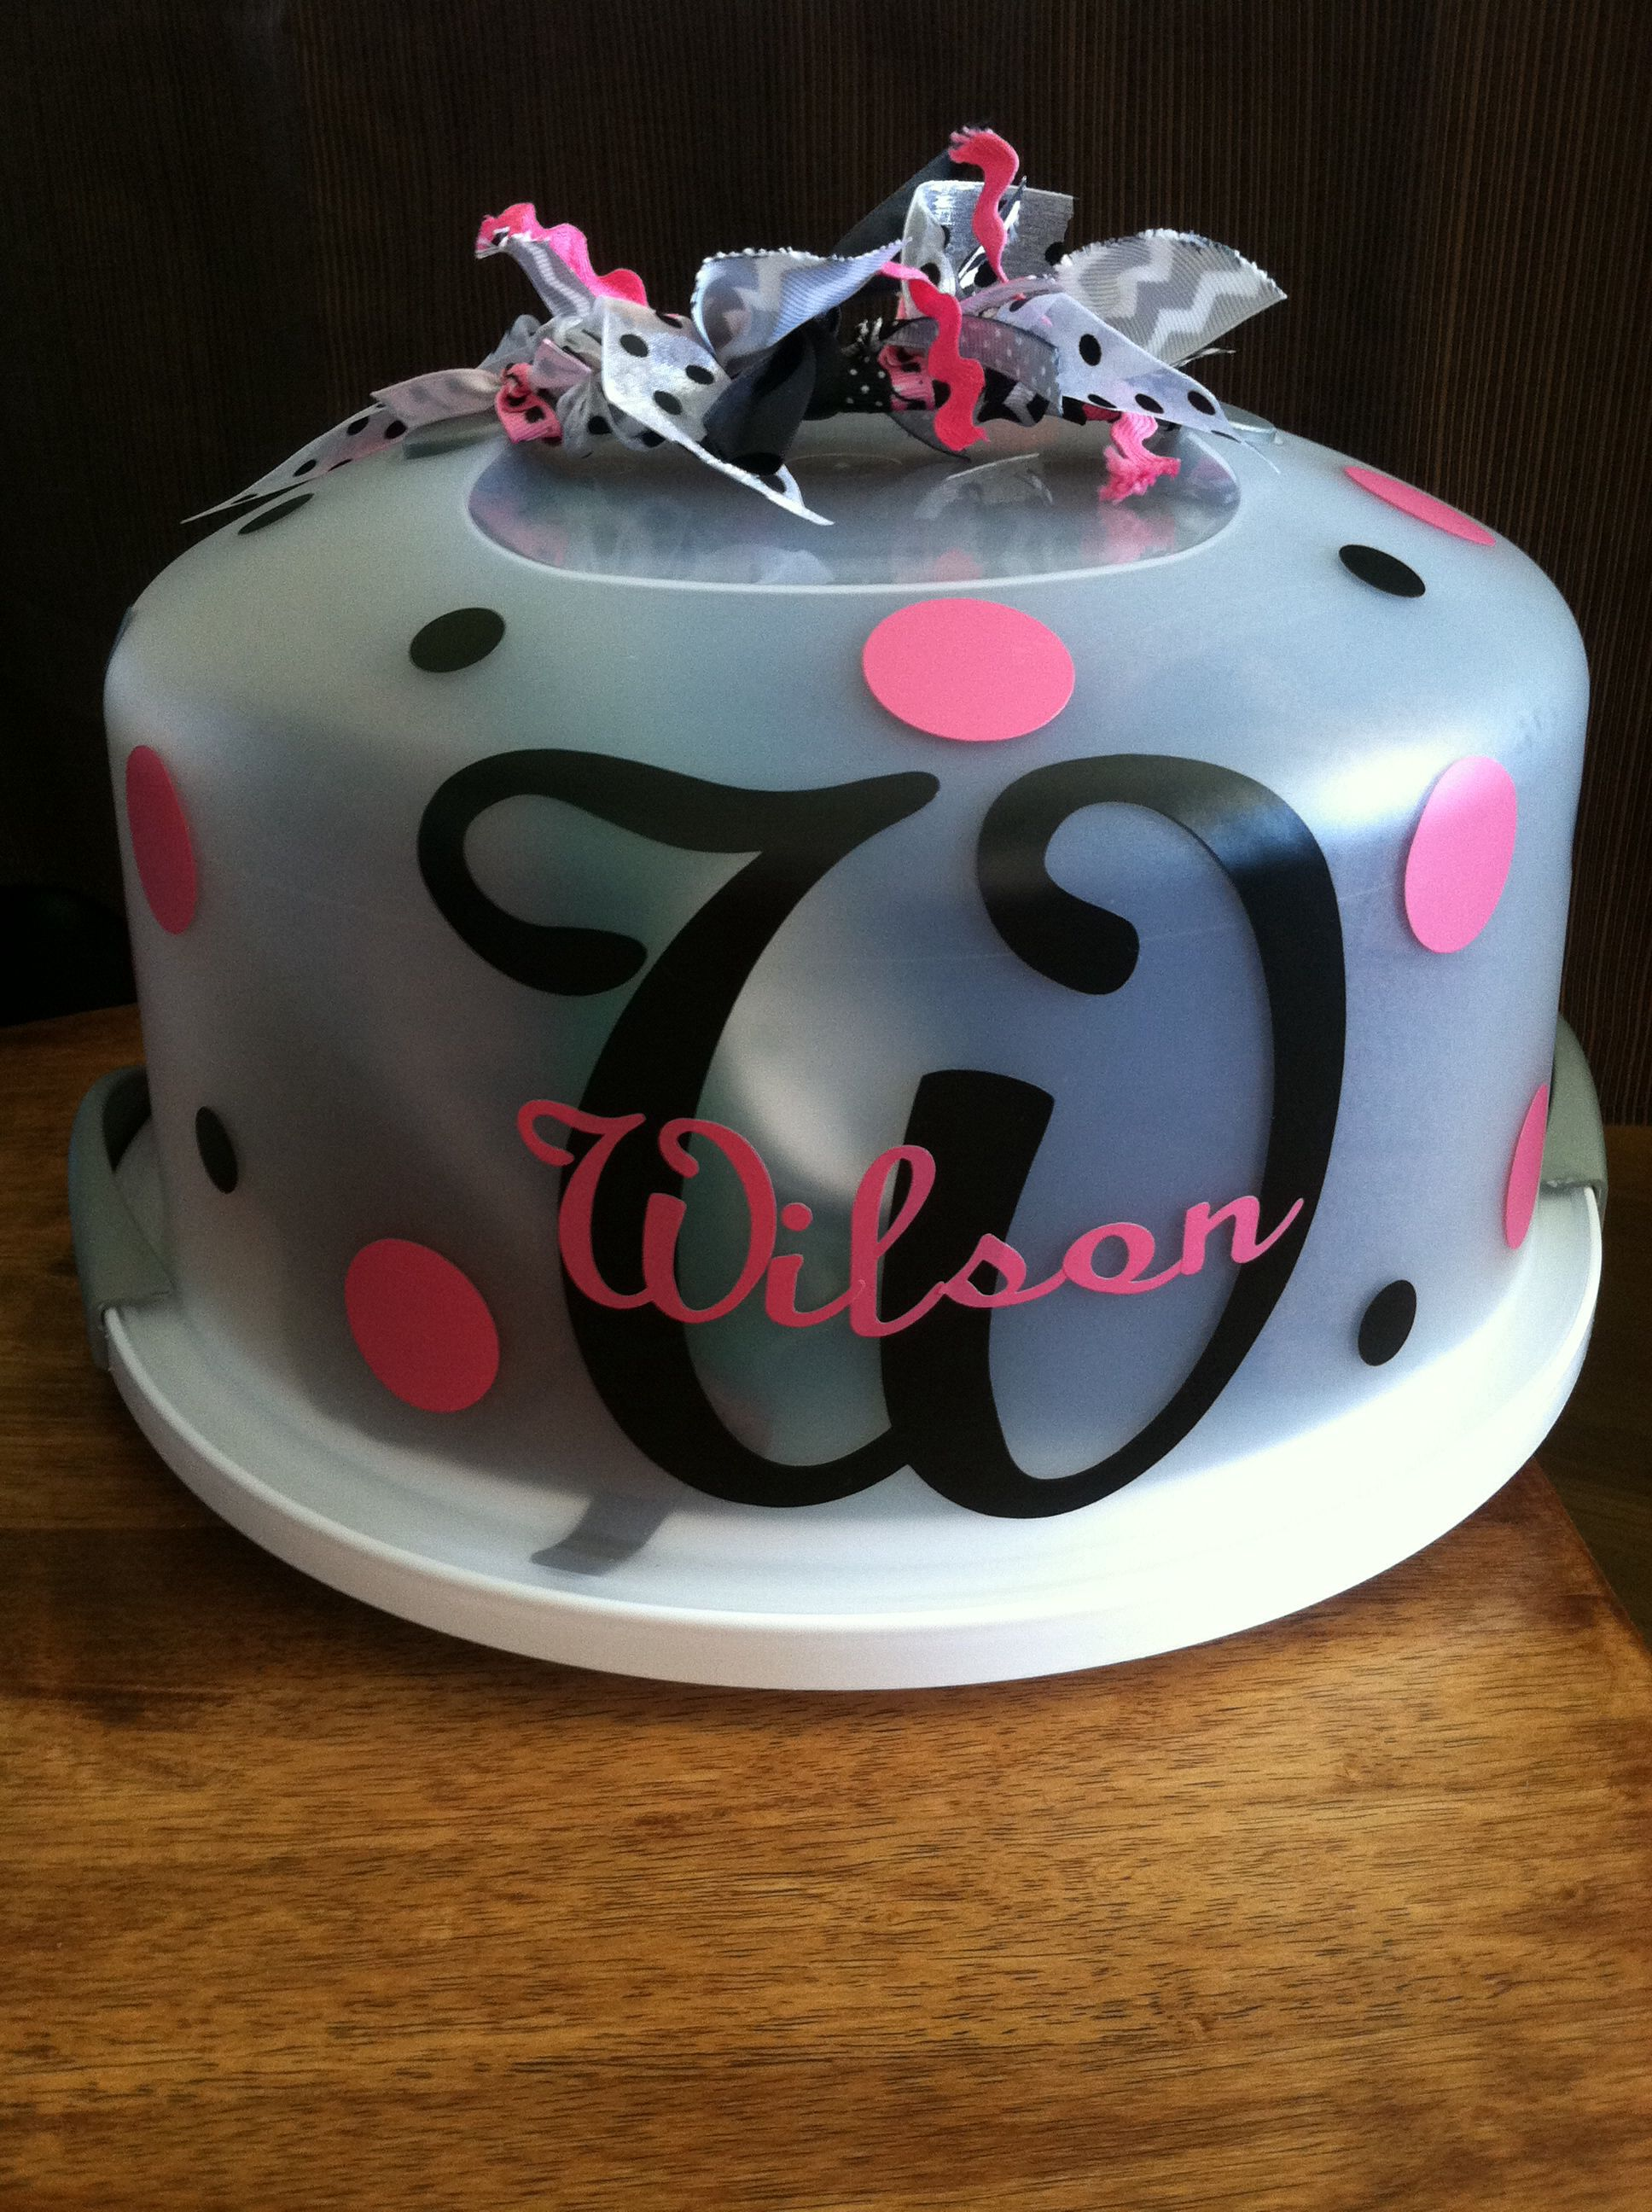 Cake Carrier Target Cool Used Cricut For This Projectcake Carrier From Target And Vinyl Design Inspiration